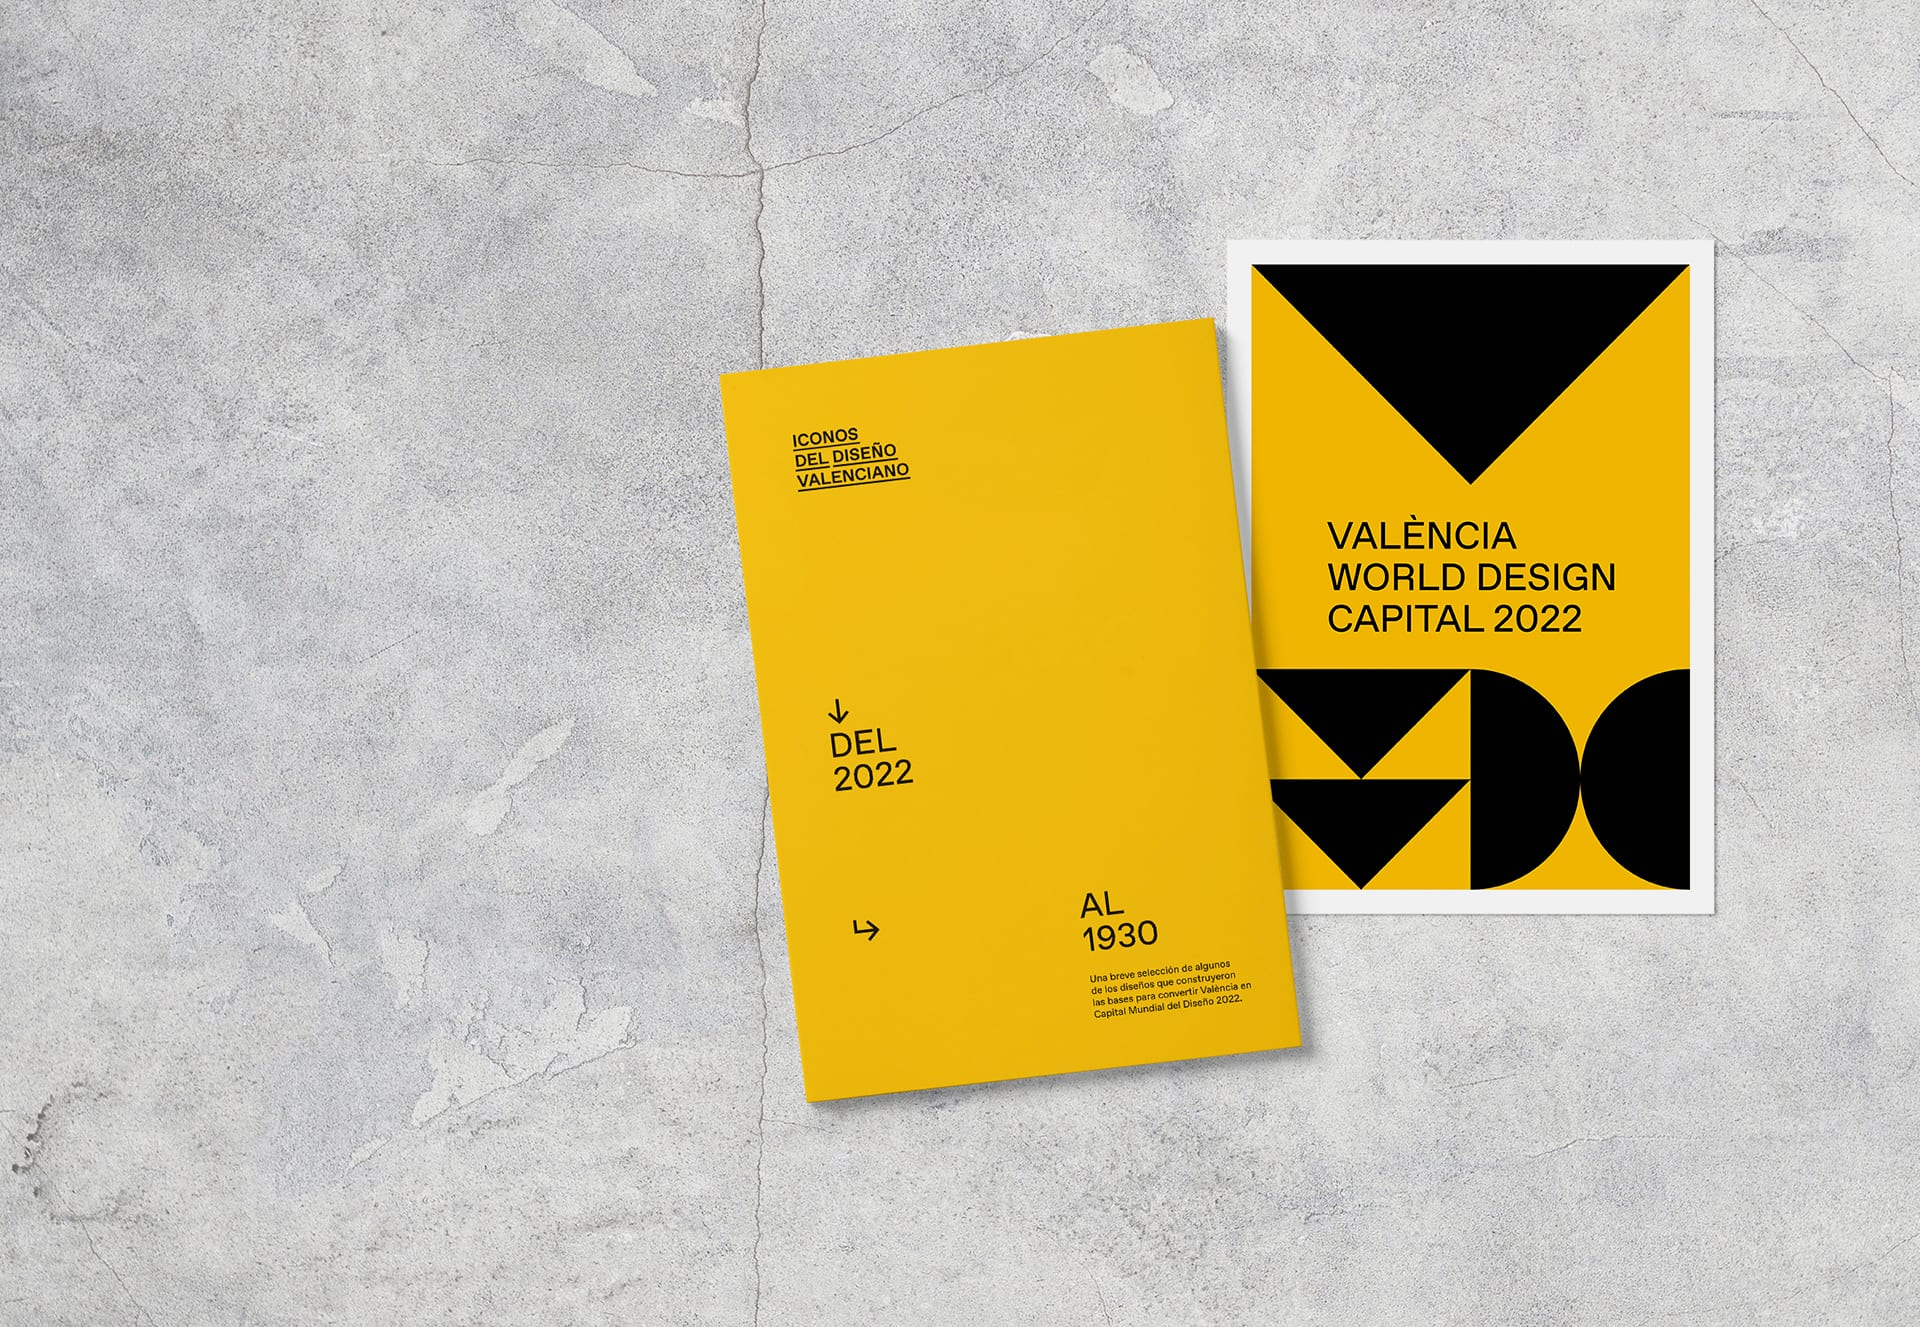 """Collection """"Icons of Valencian design. From 1930 to 2022"""""""